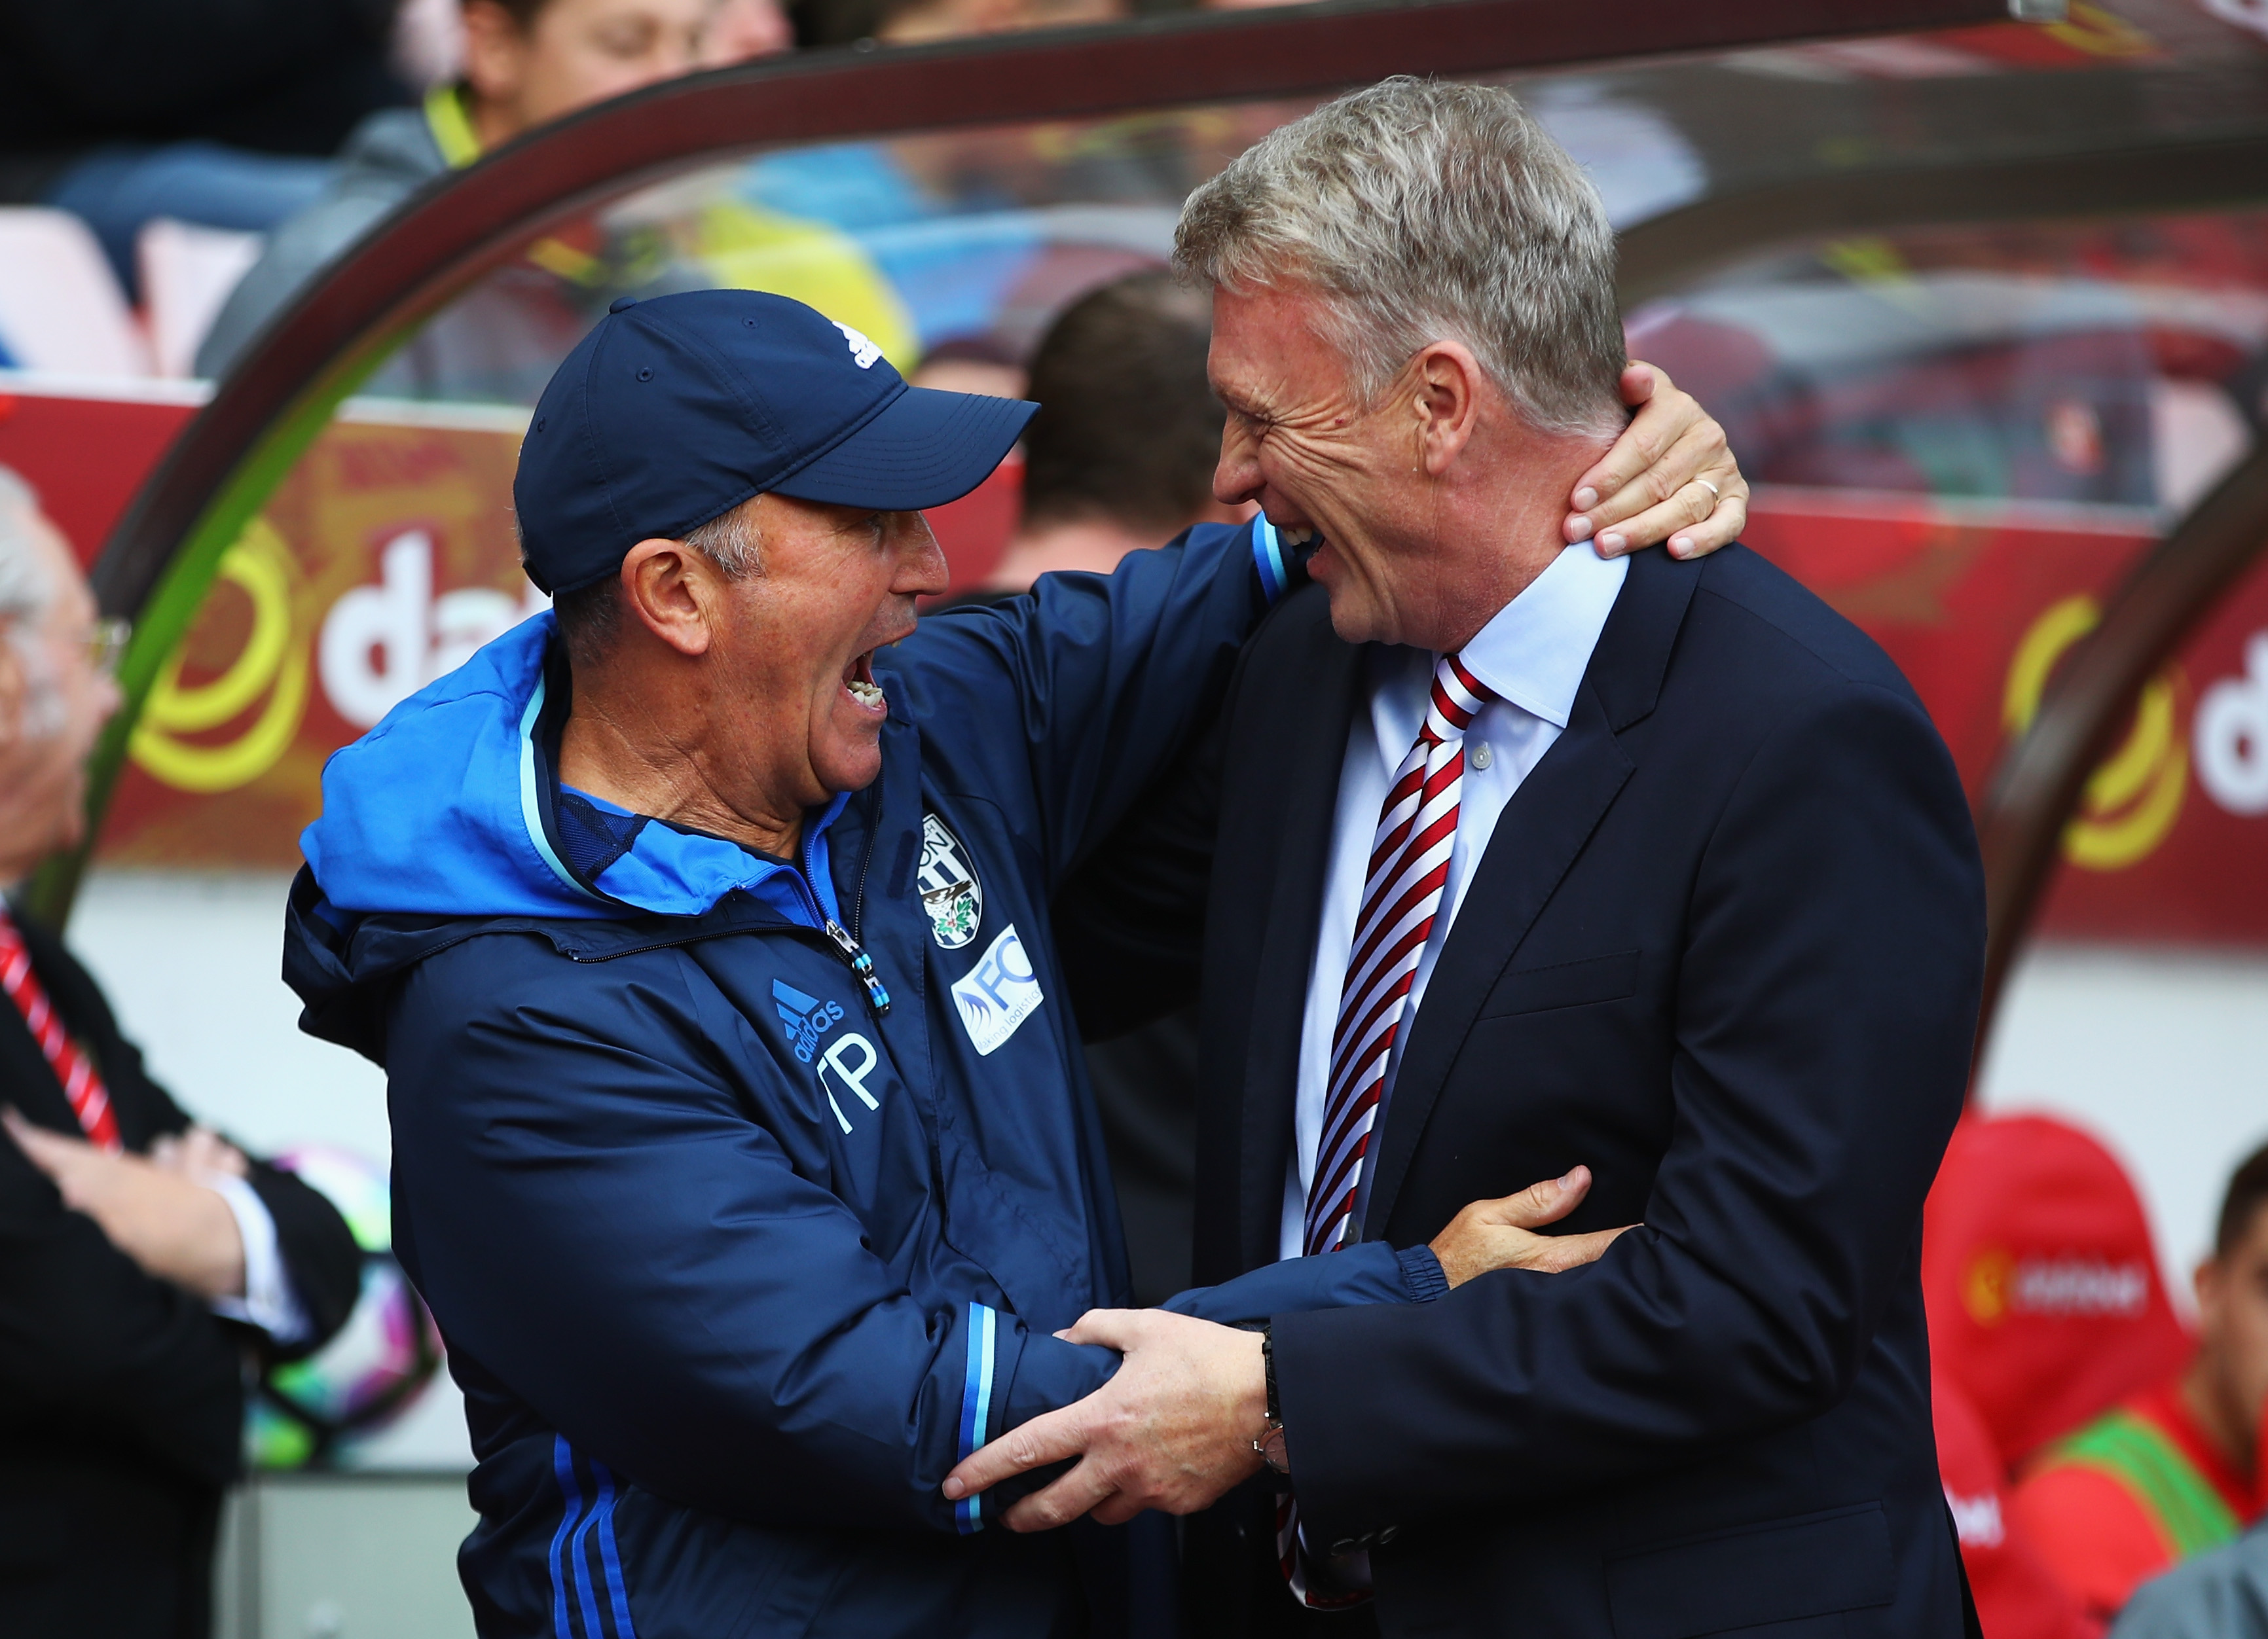 SUNDERLAND, ENGLAND - OCTOBER 01: Tony Pulis, Manager of West Bromwich Albion (L) and David Moyes, Manager of Sunderland (R) embrace prior to kick off during the Premier League match between Sunderland and West Bromwich Albion at Stadium of Light on October 1, 2016 in Sunderland, England.  (Photo by Clive Brunskill/Getty Images)